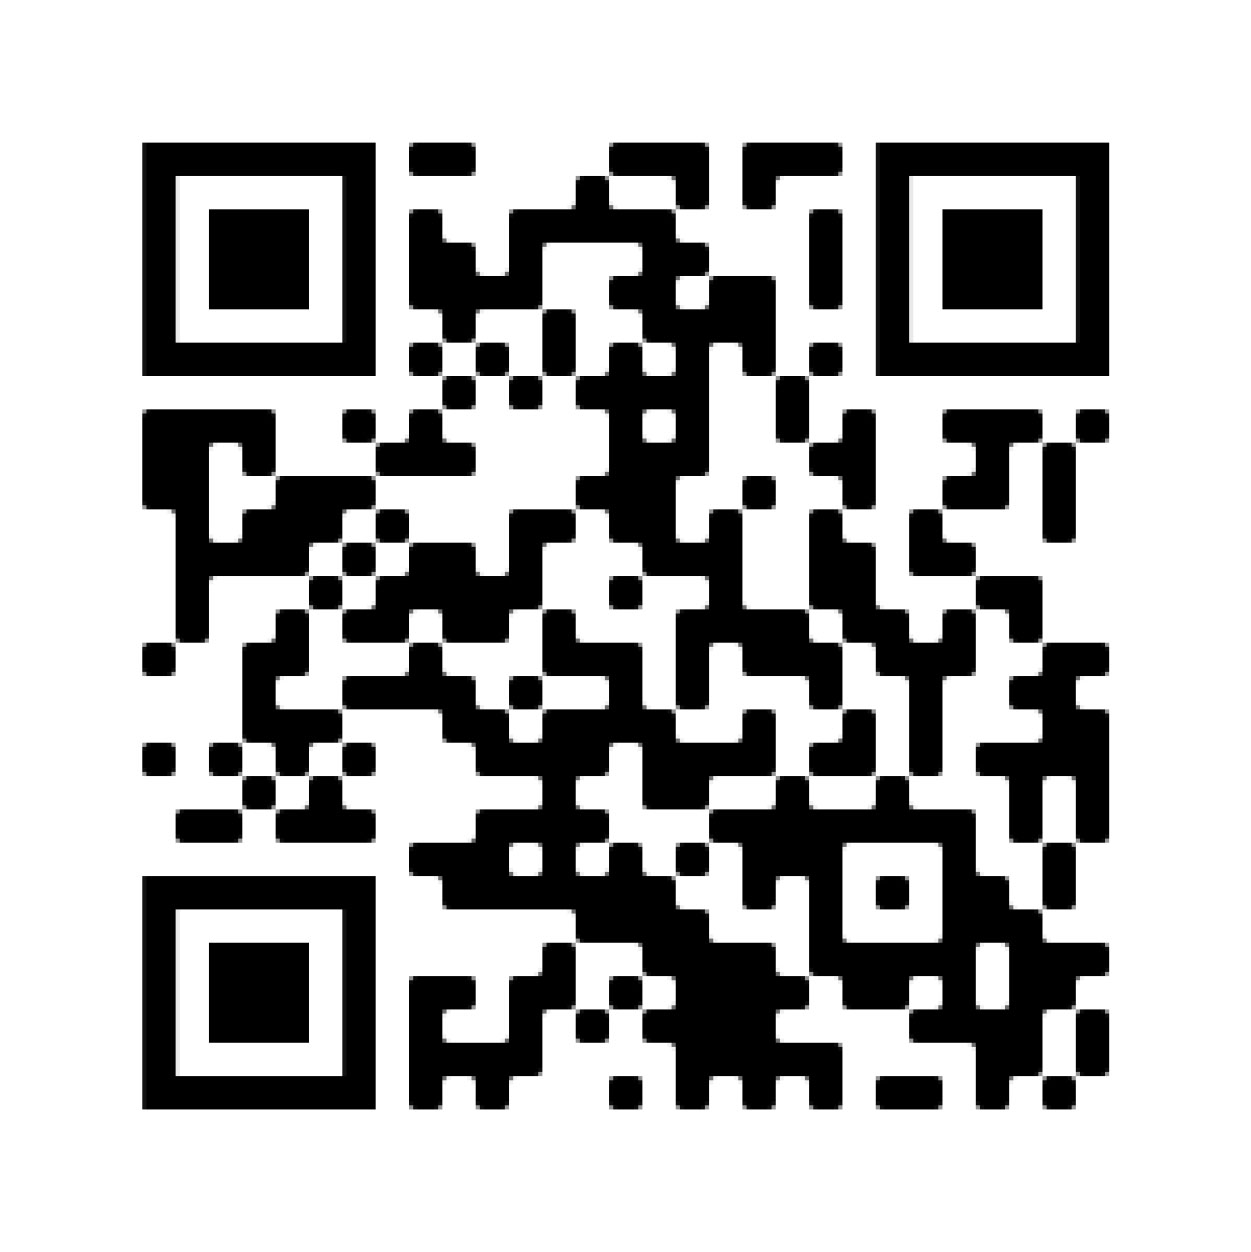 QR code which points to https://texas.curativeinc.com/walkup/8910